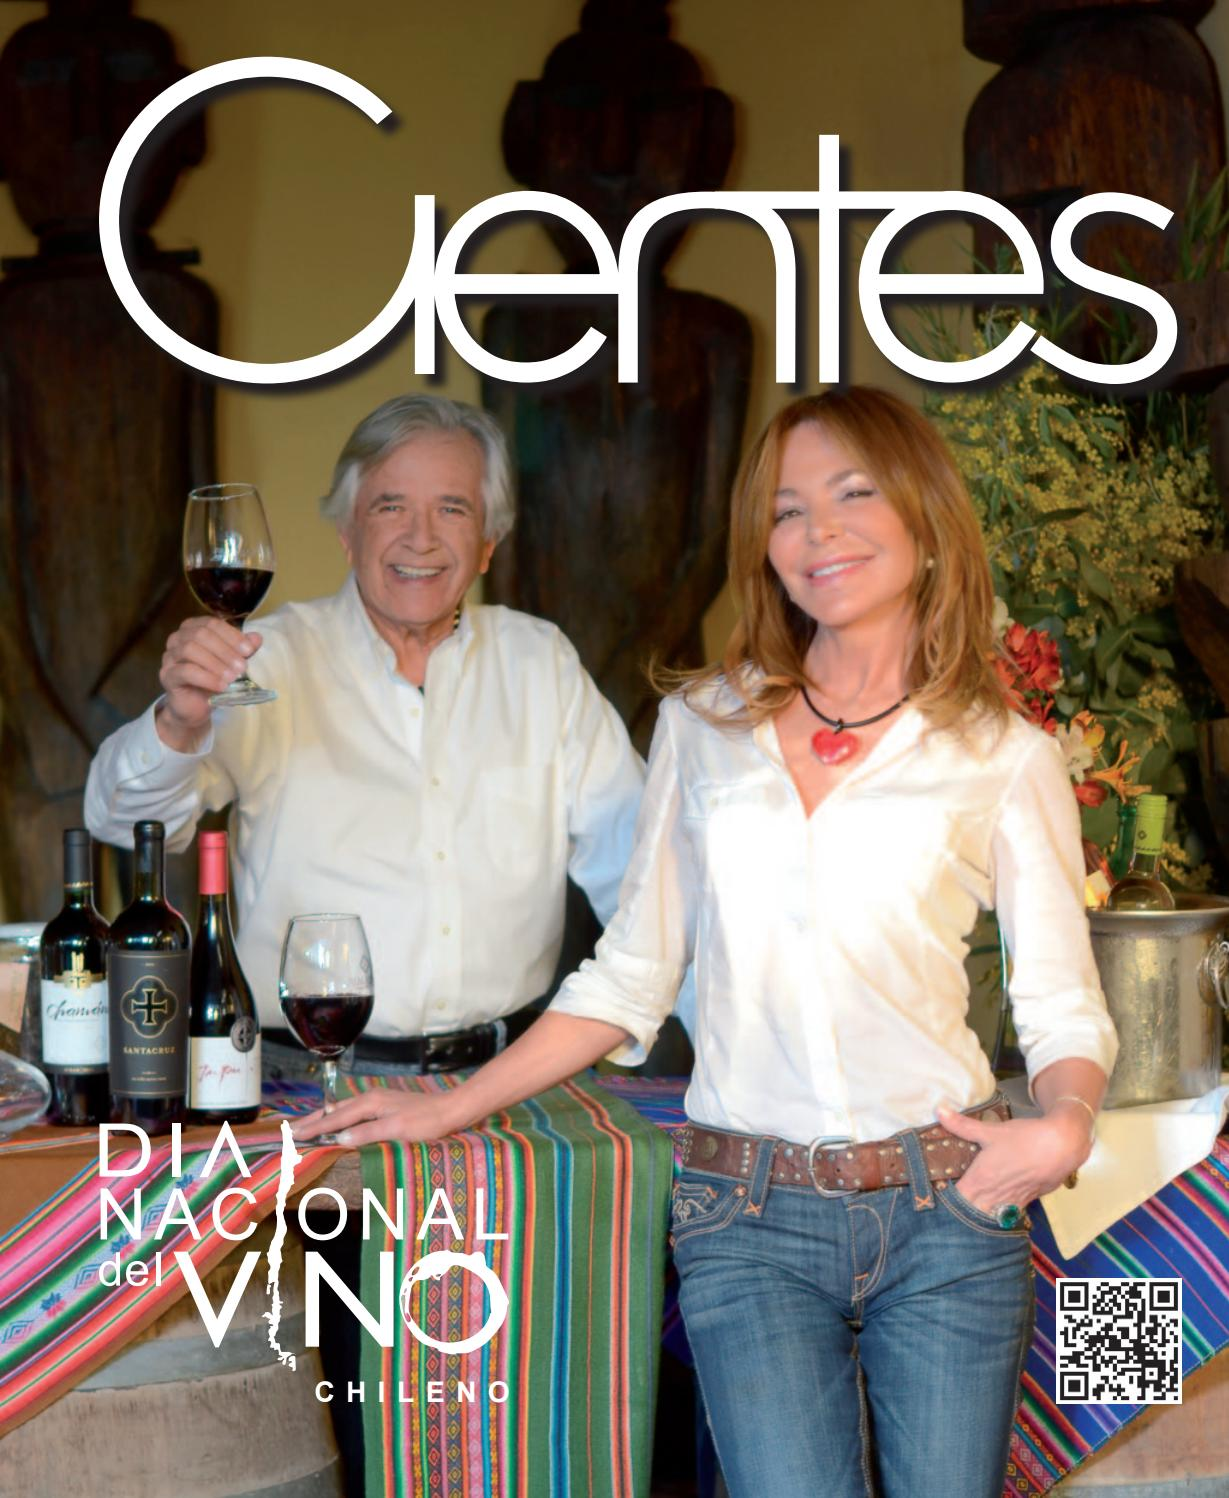 Gentes 99 by grafica revista gentes issuu for Viveros en curico